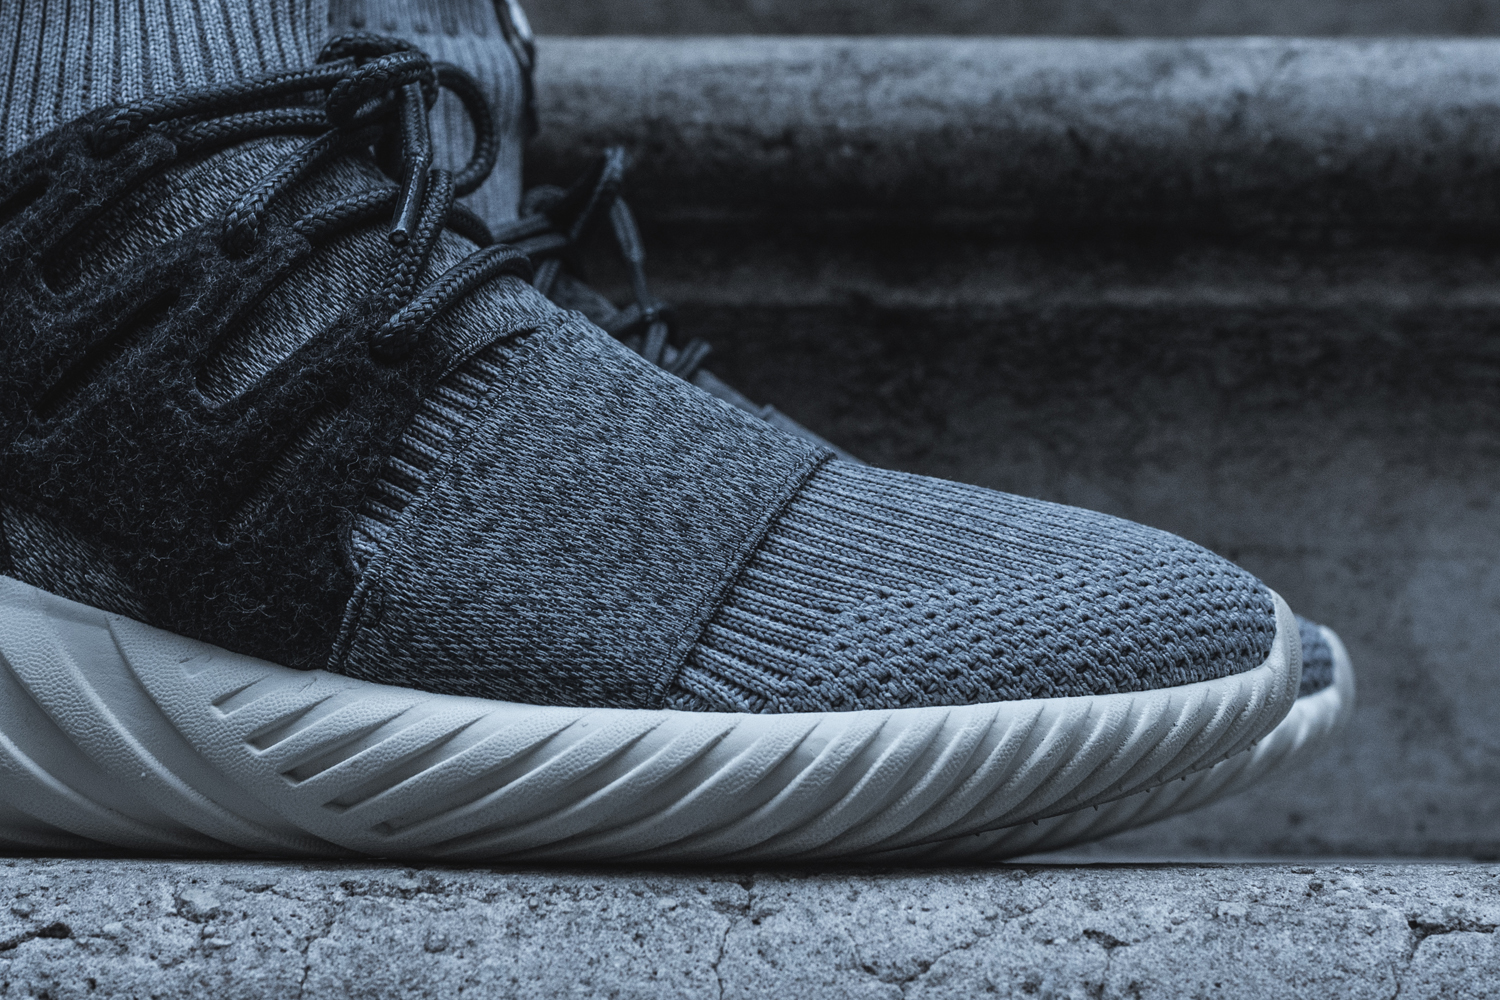 Tubular Doom PK Mgsogr Cwhite Hot Sale at kicksdaily.net! Don 't